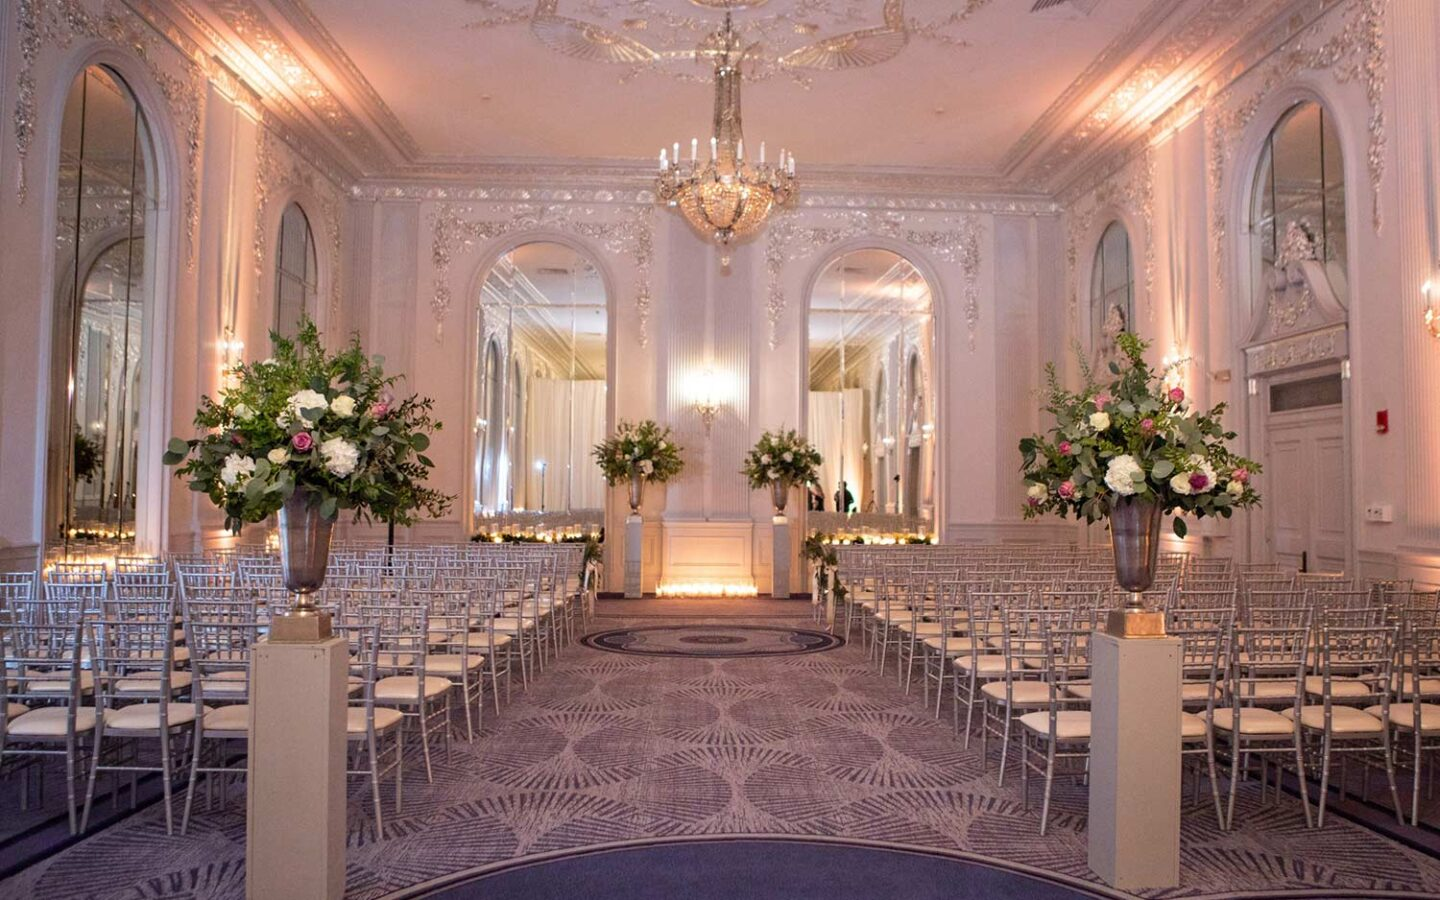 wedding space with rows of silver chairs, two floral arrangements, and a large crystal chandelier